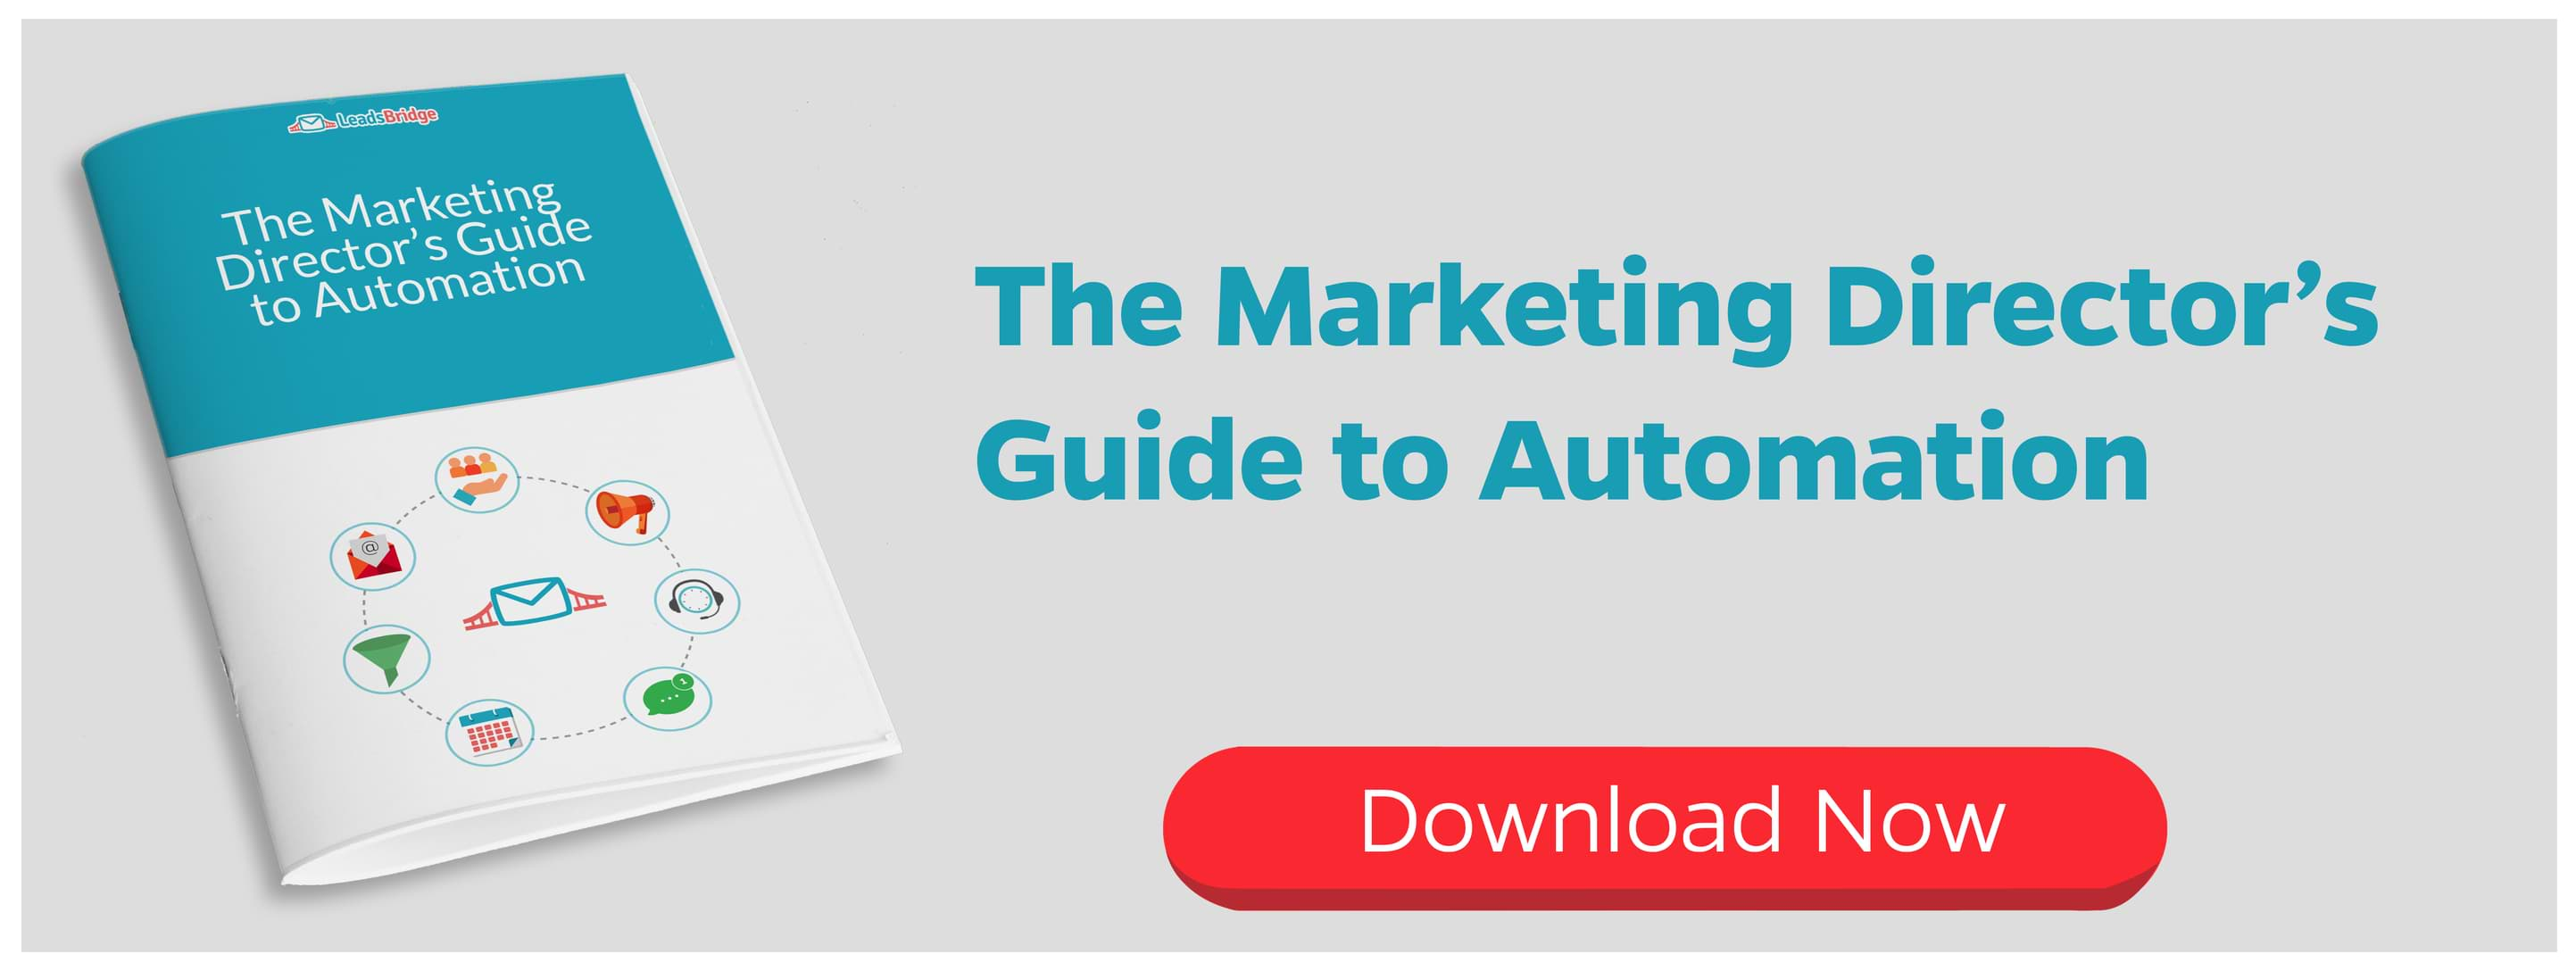 Corporate's Automation Guide guide